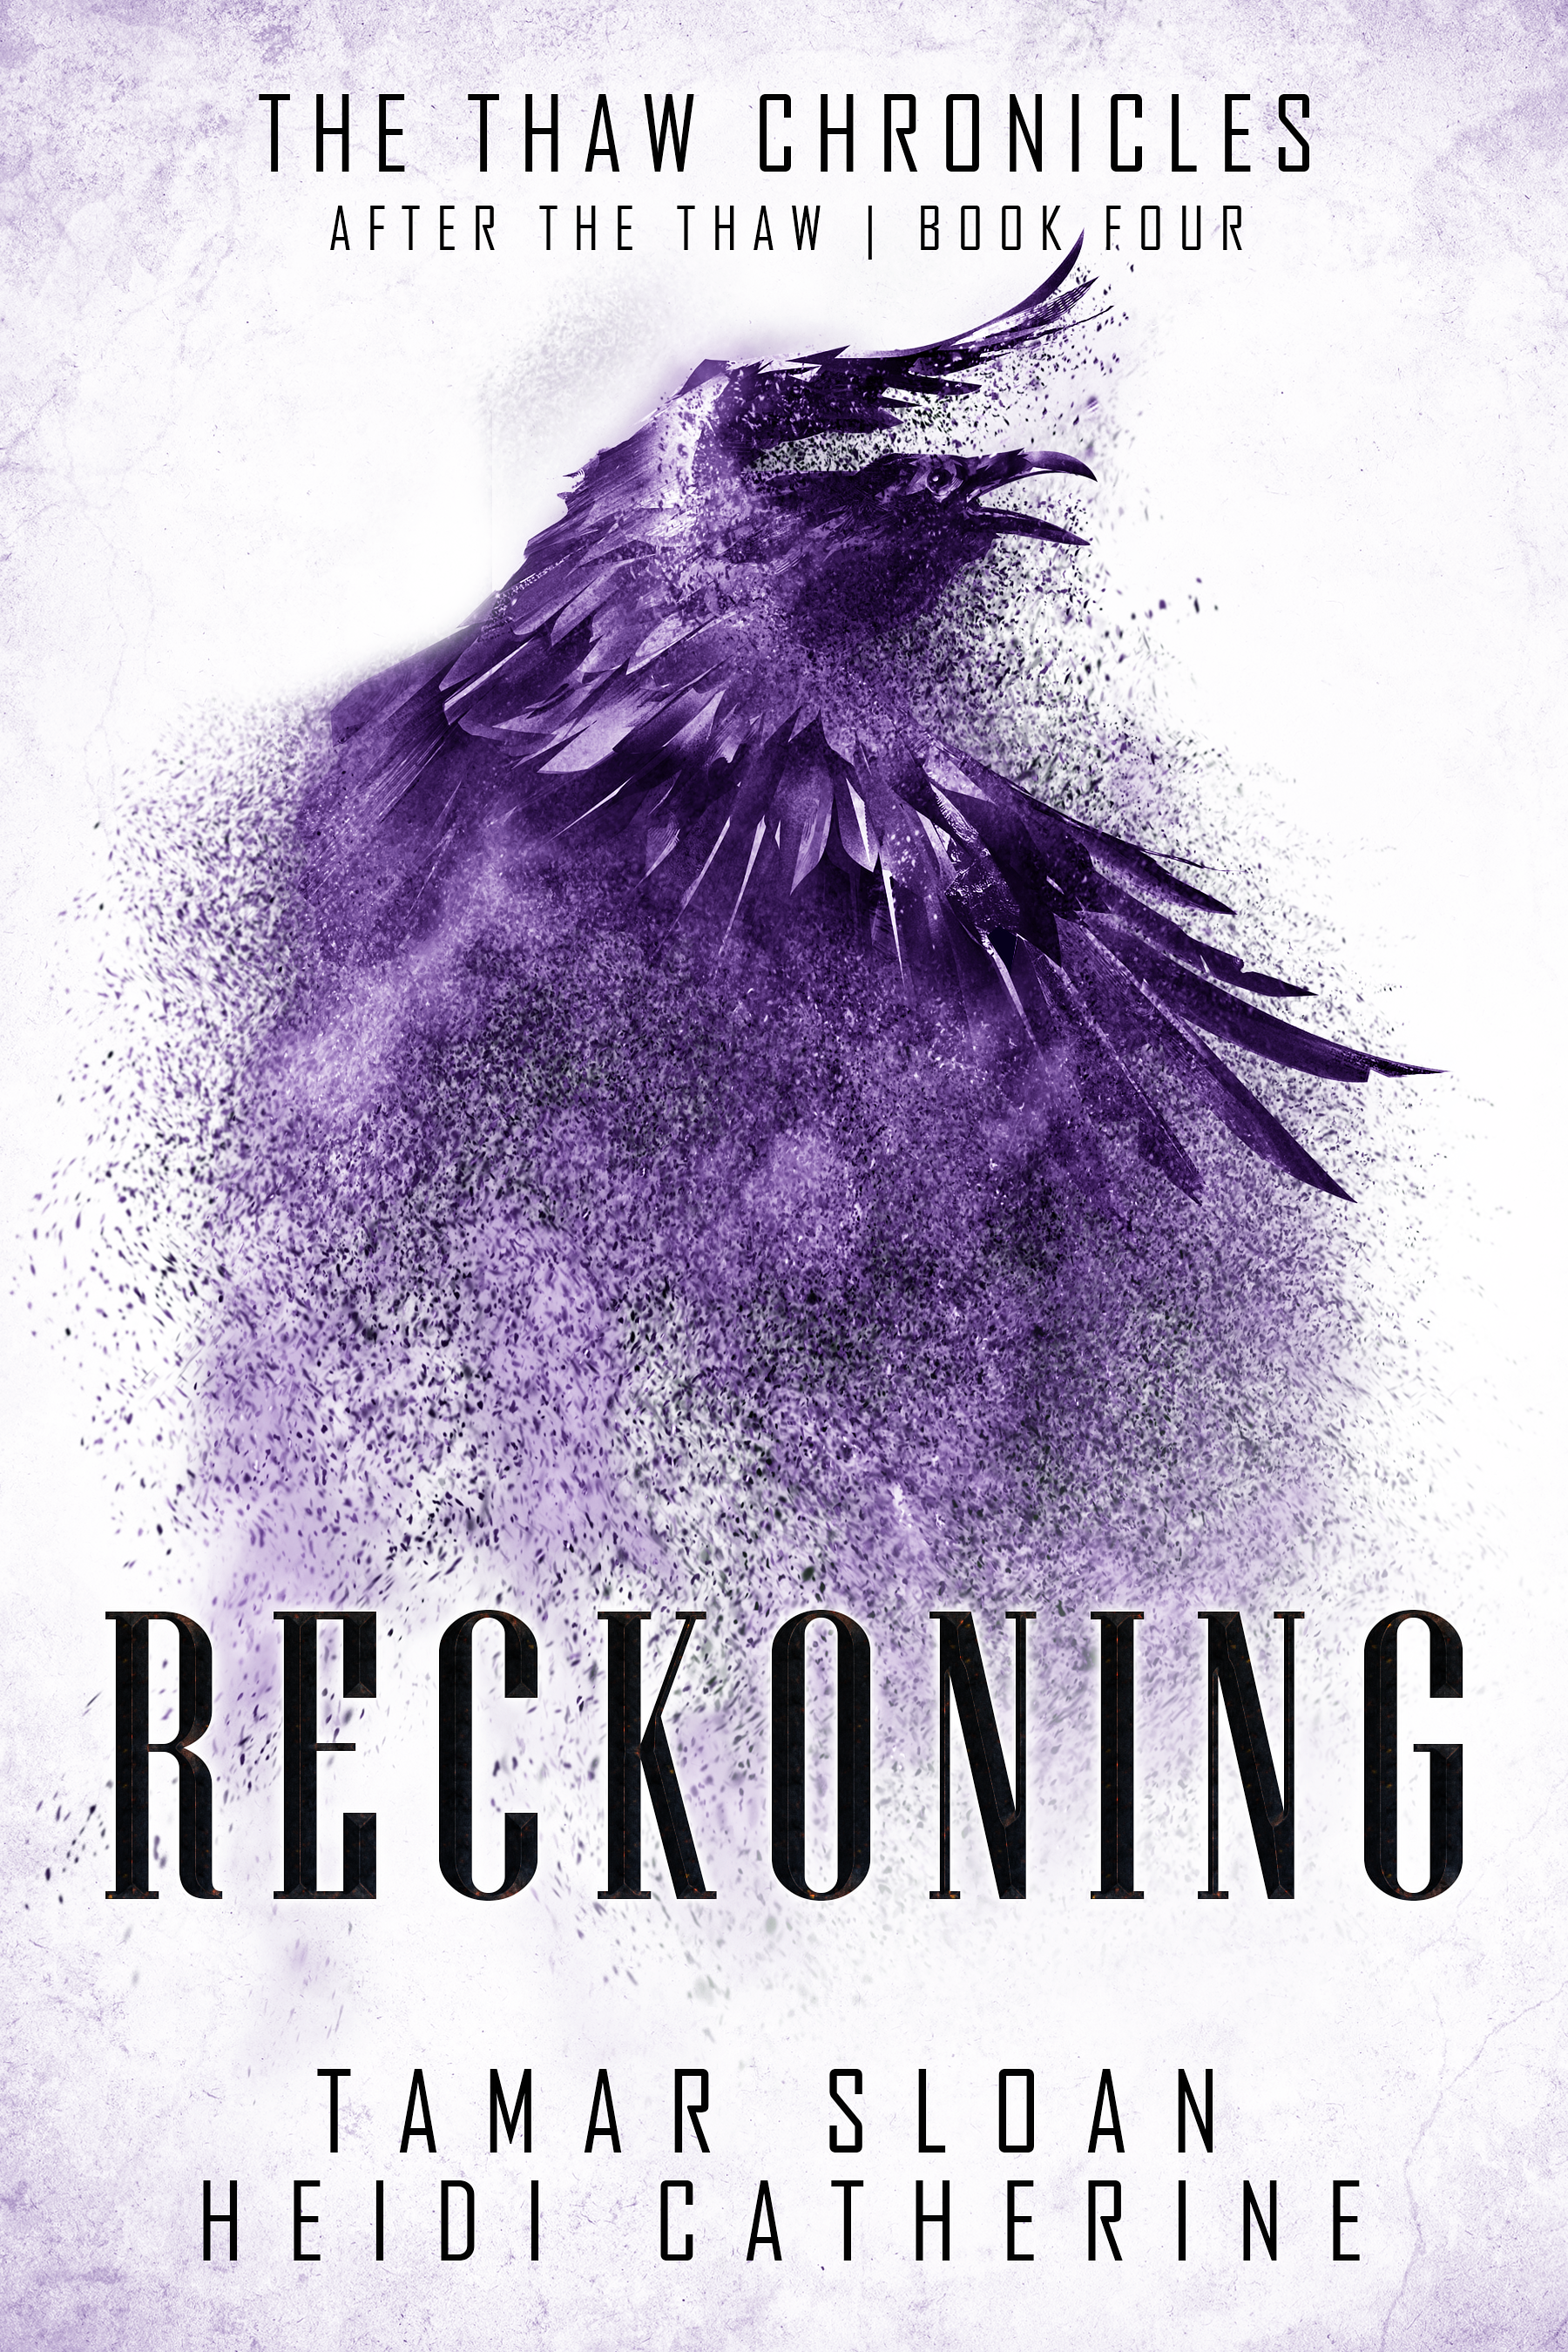 RECKONING REVISED MAY